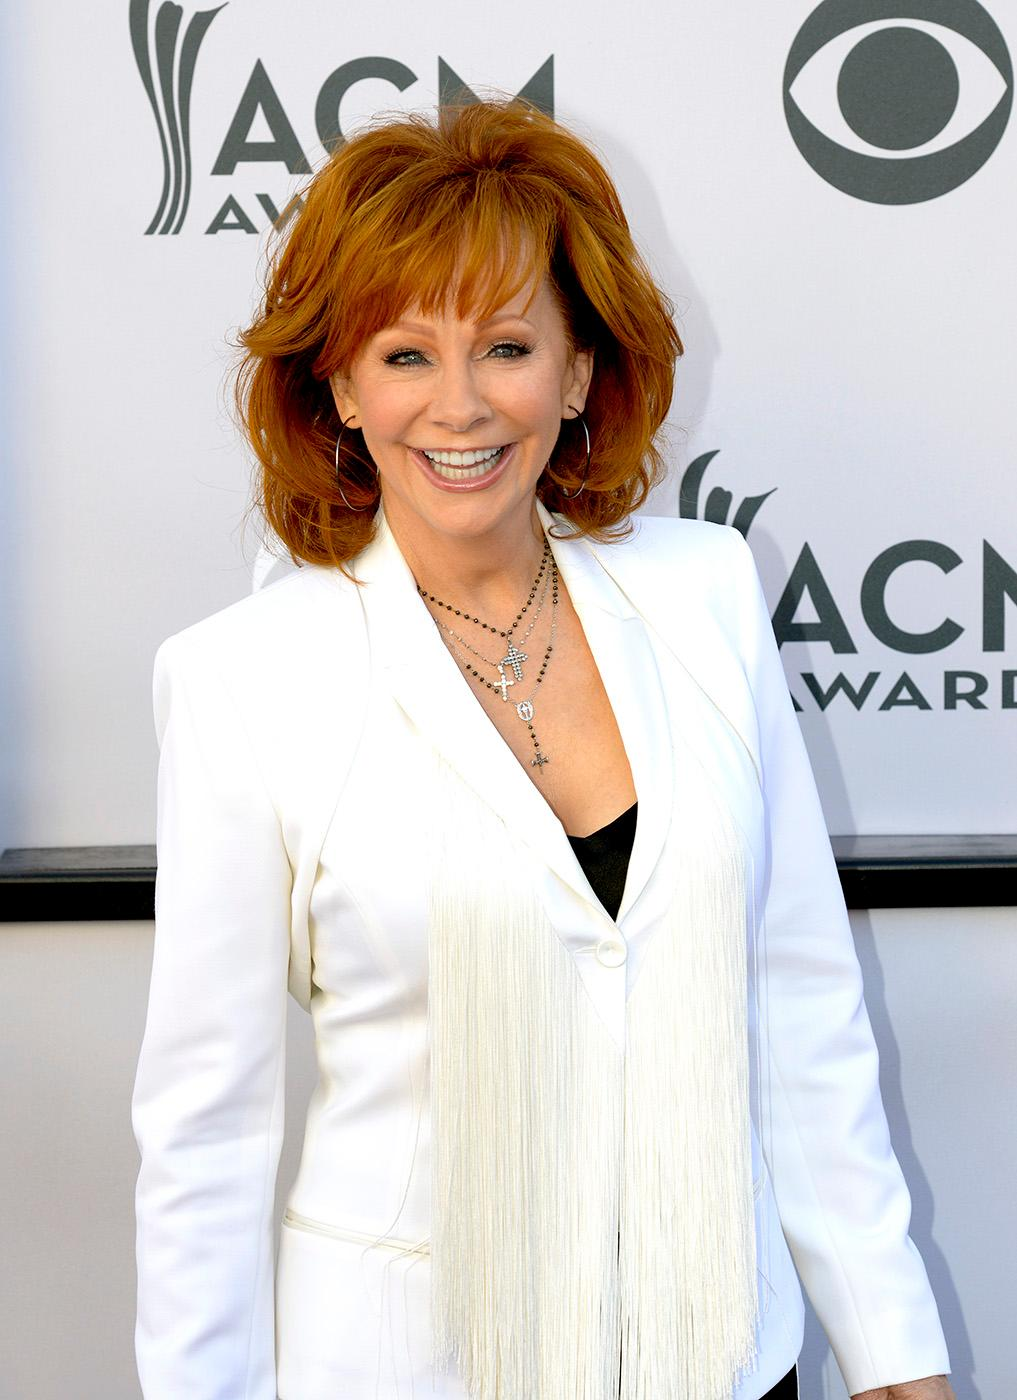 Reba McEntire walks the Academy of Country Music Awards red carpet at T-Mobile Arena. Sunday, April 2, 2017. (Glenn Pinkerton/ Las Vegas News Bureau)